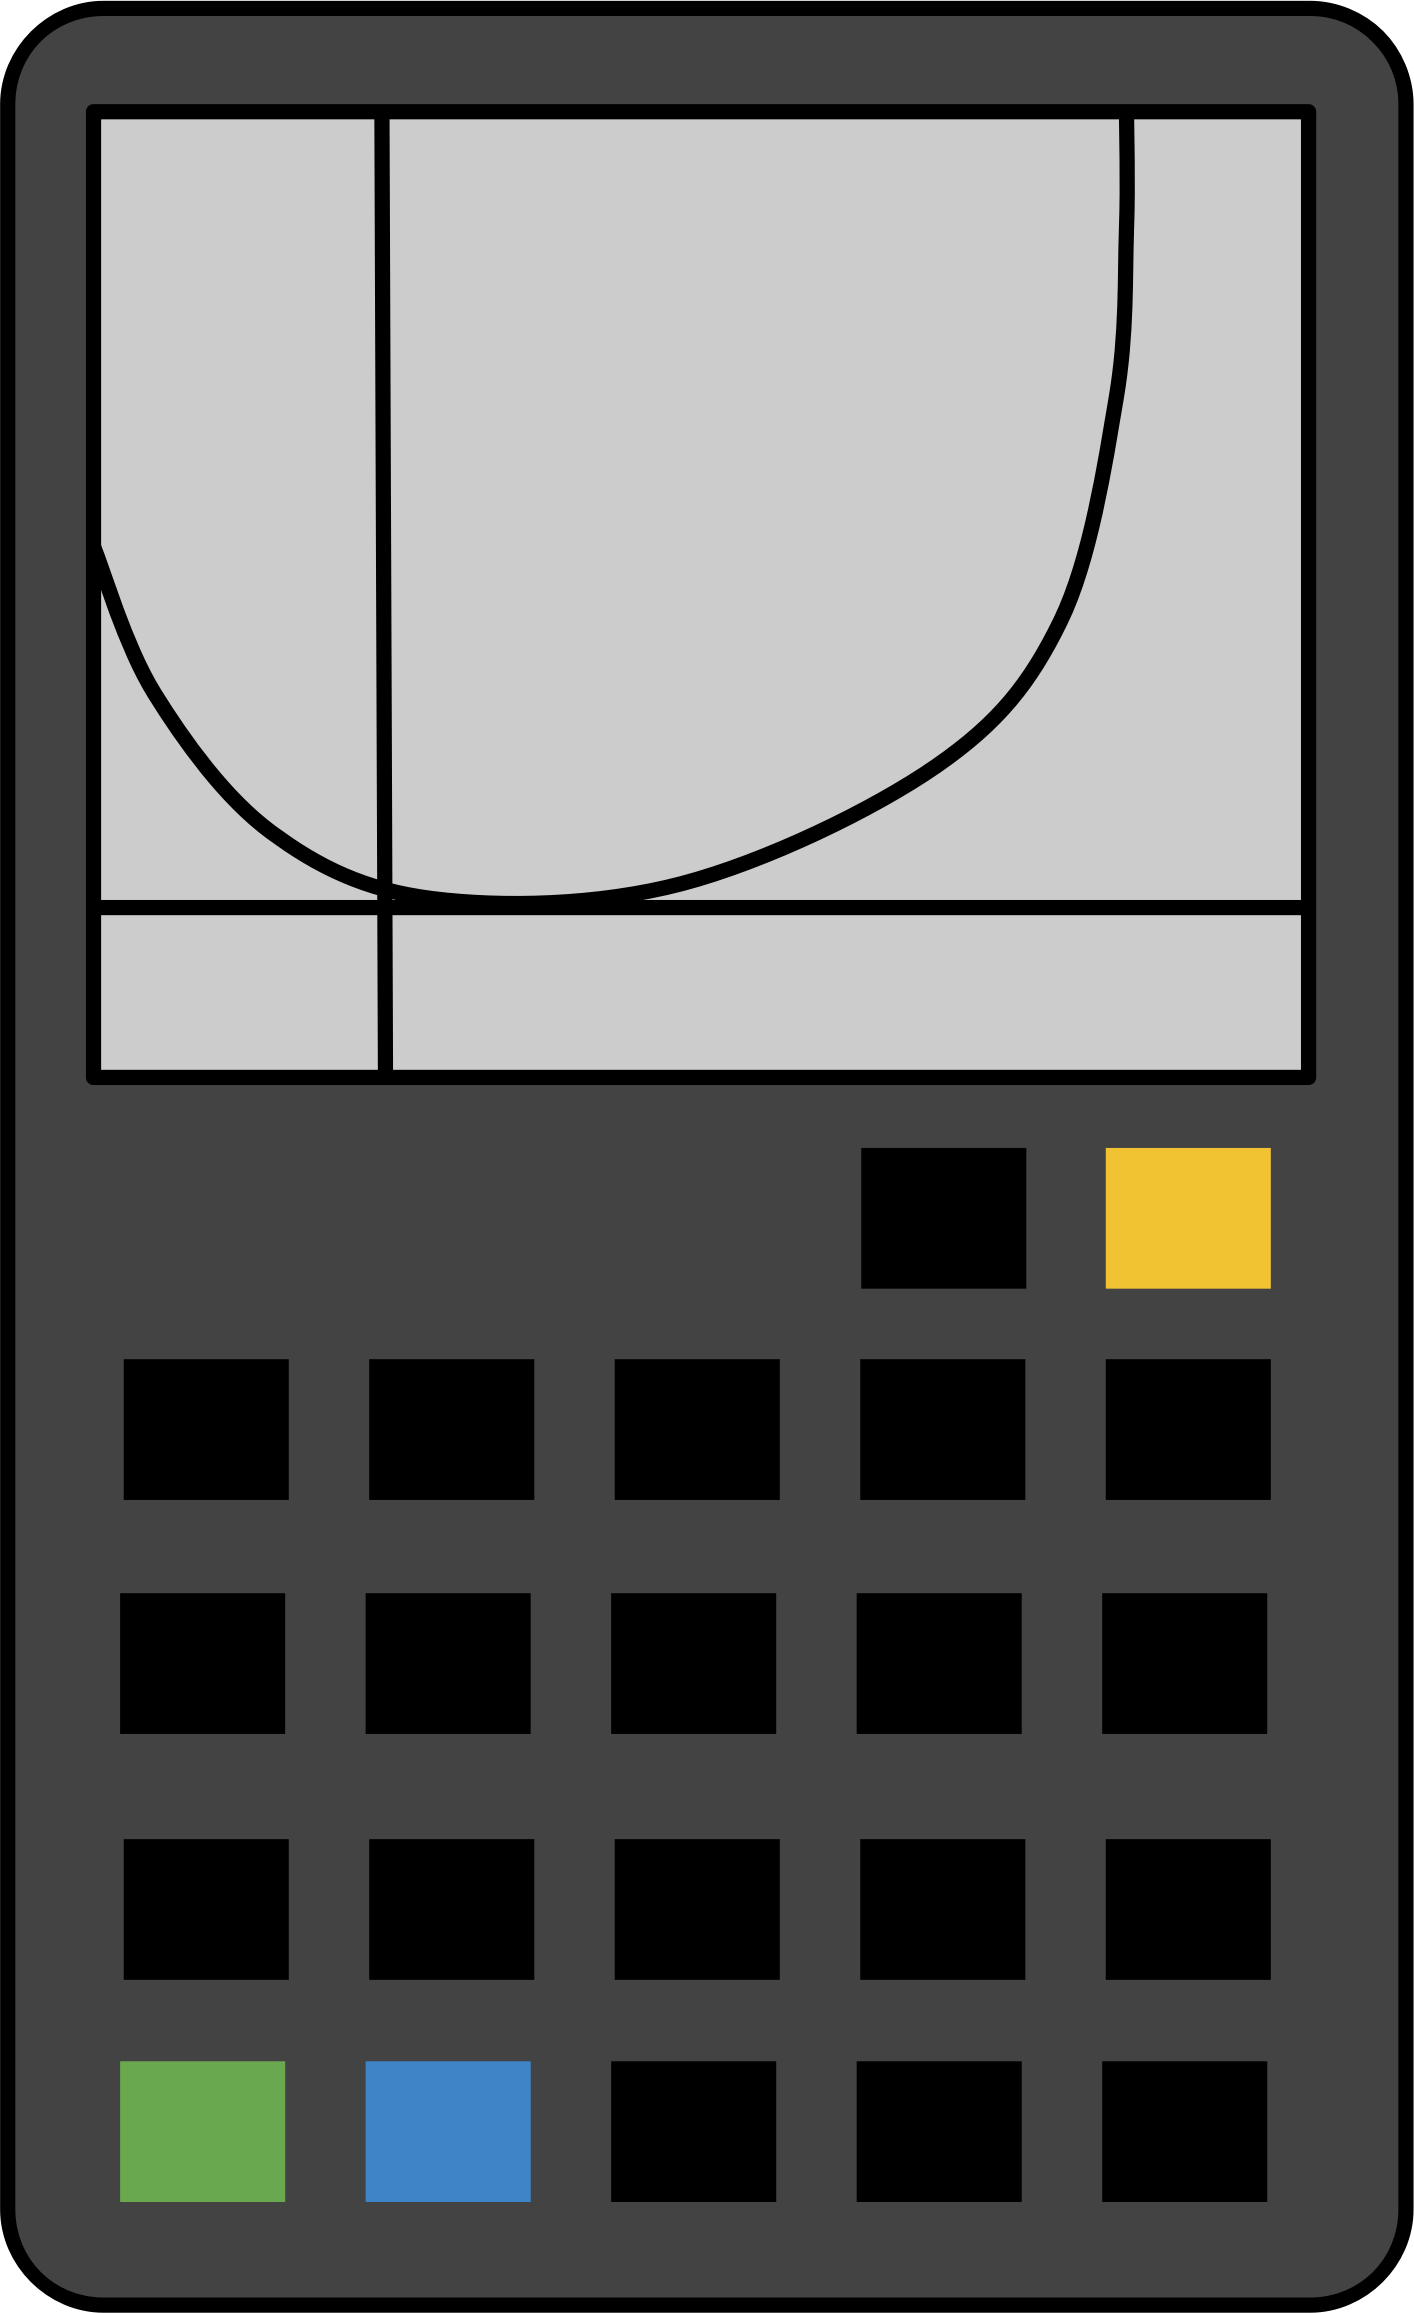 Calculator clipart graphing. Big image png